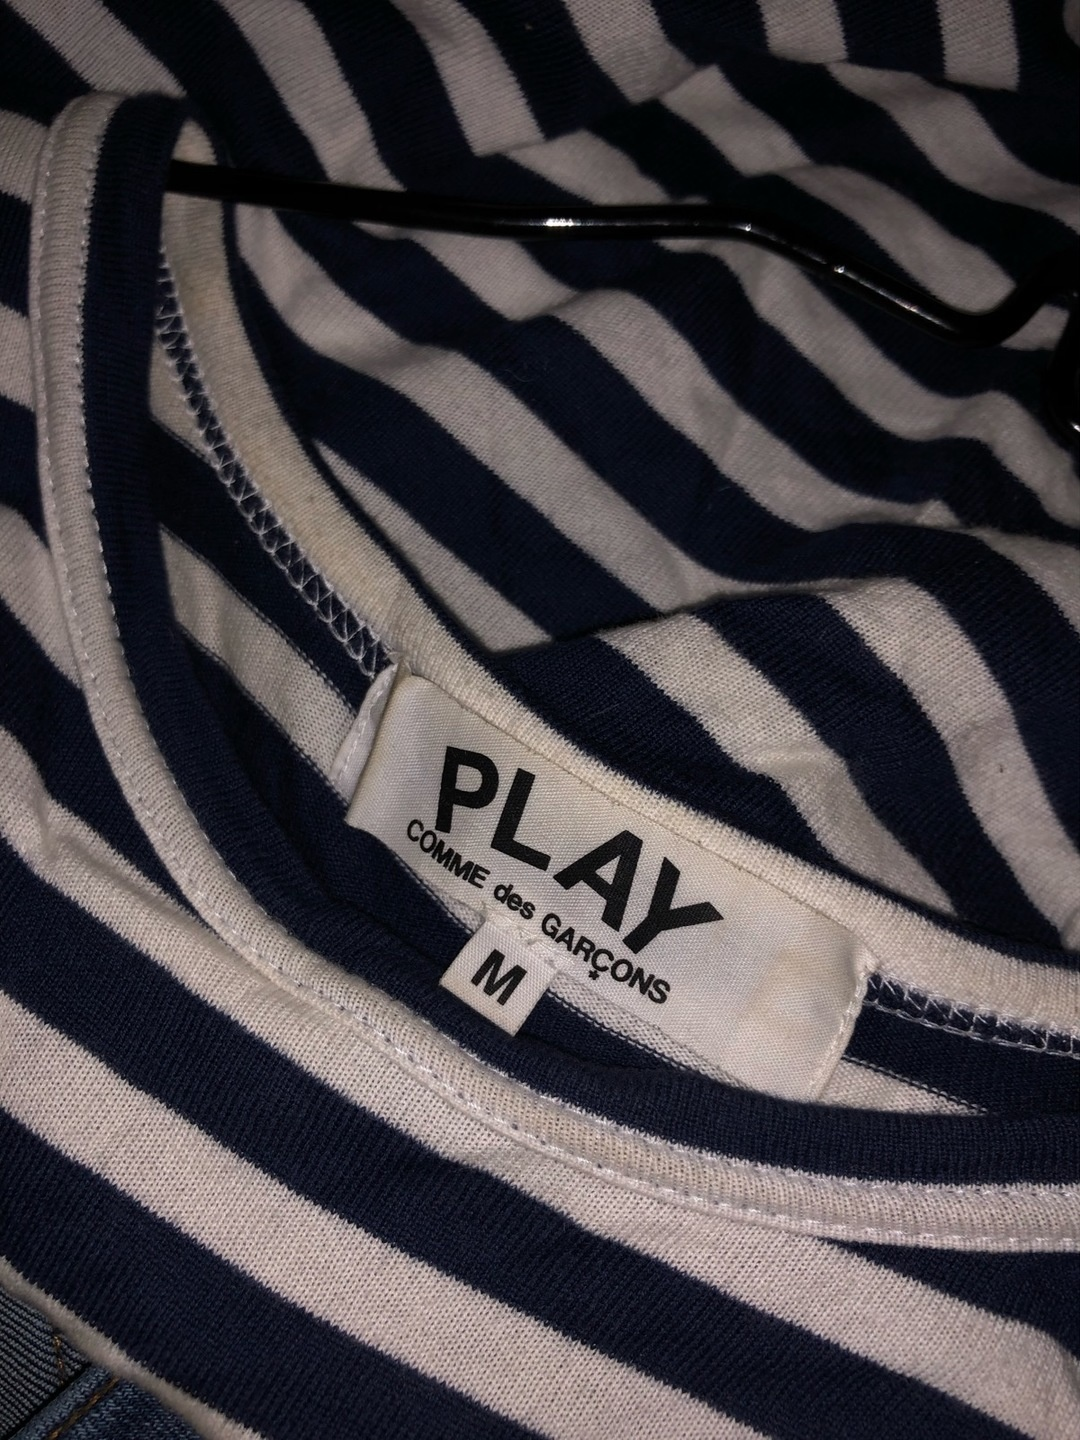 Damers toppe og t-shirts - COMME DES GARCONS PLAY photo 2